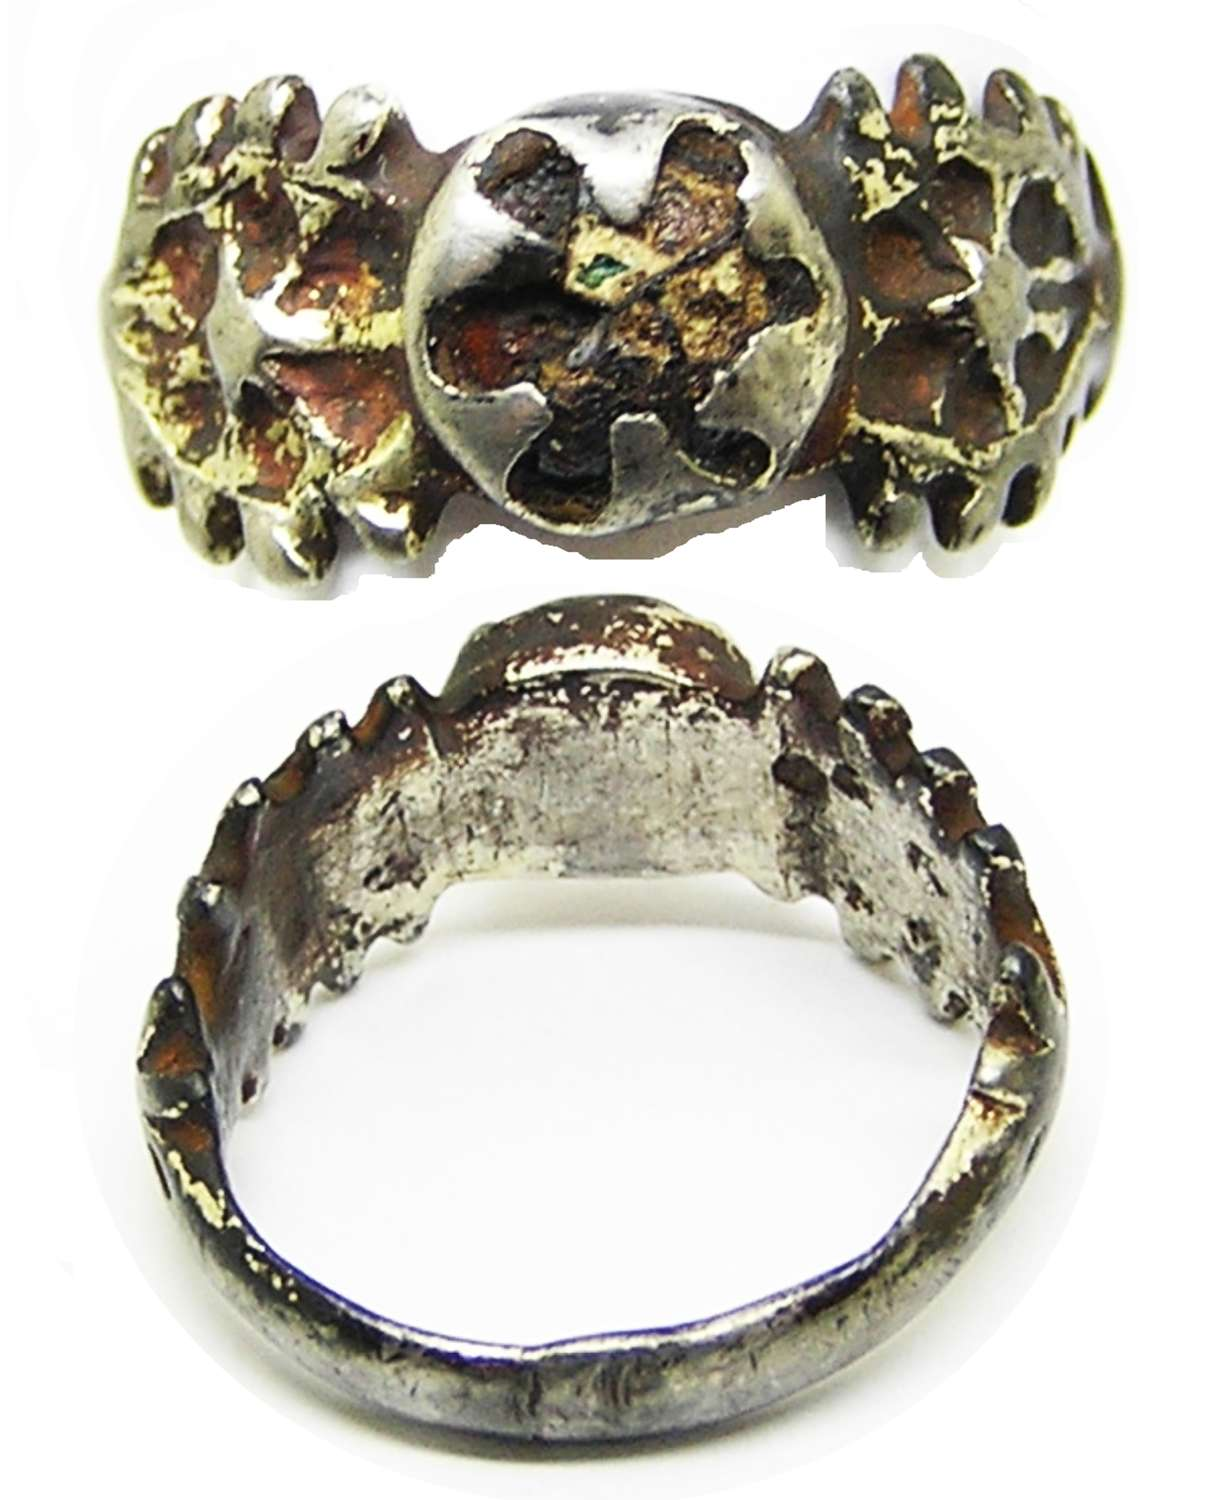 Renaissance Tudor period silver-gilt and enamel finger ring